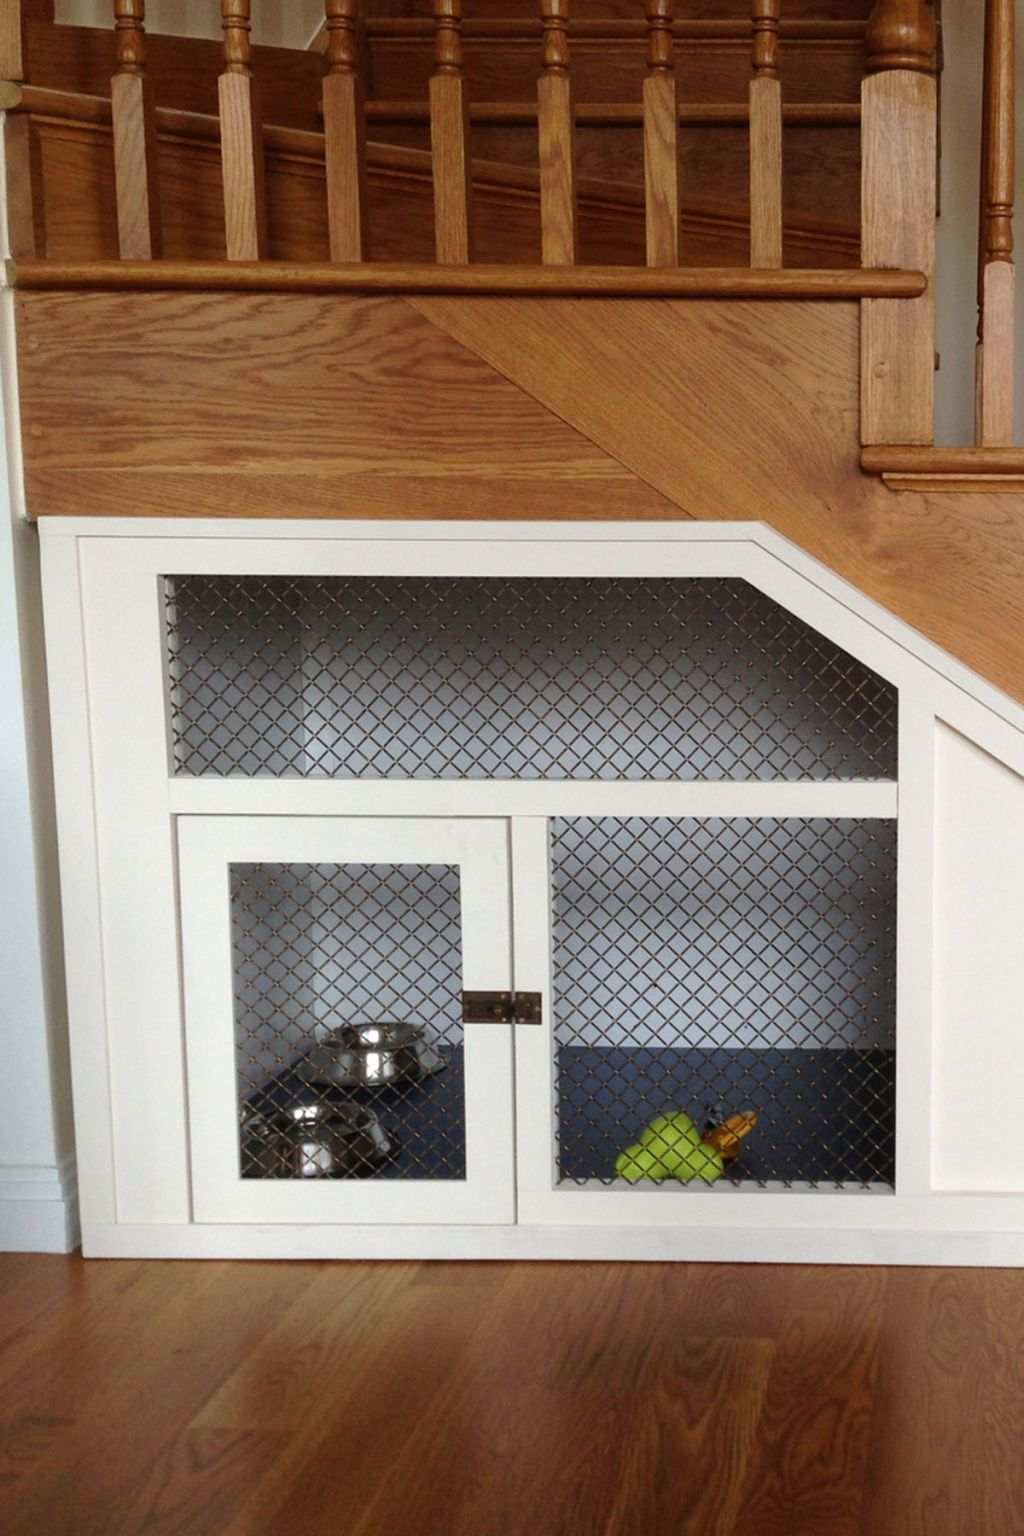 Dog Kennel Under The Stairs Espace Sous Les Escaliers Idee Deco